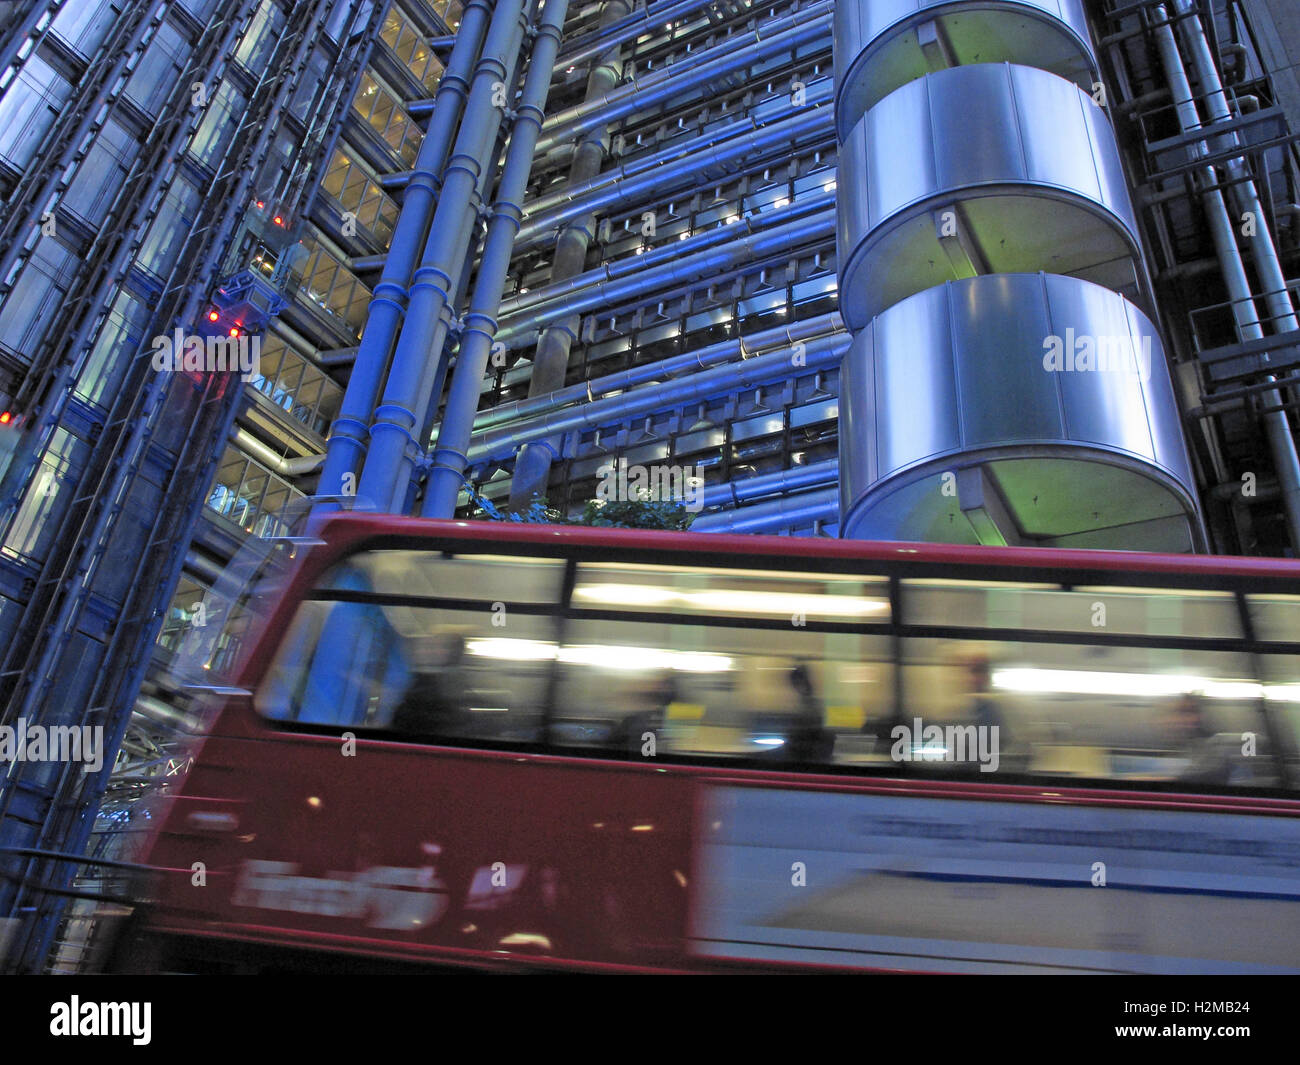 Inside-Out,city,of,financial,district,Brexit,Passporting,radical,Bowellism,architecture,street,modern,night,shot,nightshot,tower,metropolis,twilight,bold,first,bus,red,Lloyds Building,Lloyds Insurance Building,Financial District,Financial Passporting,Lime St,Lime Street,Richard Rogers,GoTonySmith,@HotpixUK,Tony,Smith,different,unique,Richard,Rogers,Bovis,construction,film,location,locations,steel,glass,windows,financial,centre,center,Europe,Futuristic,GB,UK,controversial,design,Buy Pictures of,Buy Images Of,Images of,Stock Images,Tony Smith,Photo of,Night Shot,City Of London,Great Britain,Red Bus,London Bus